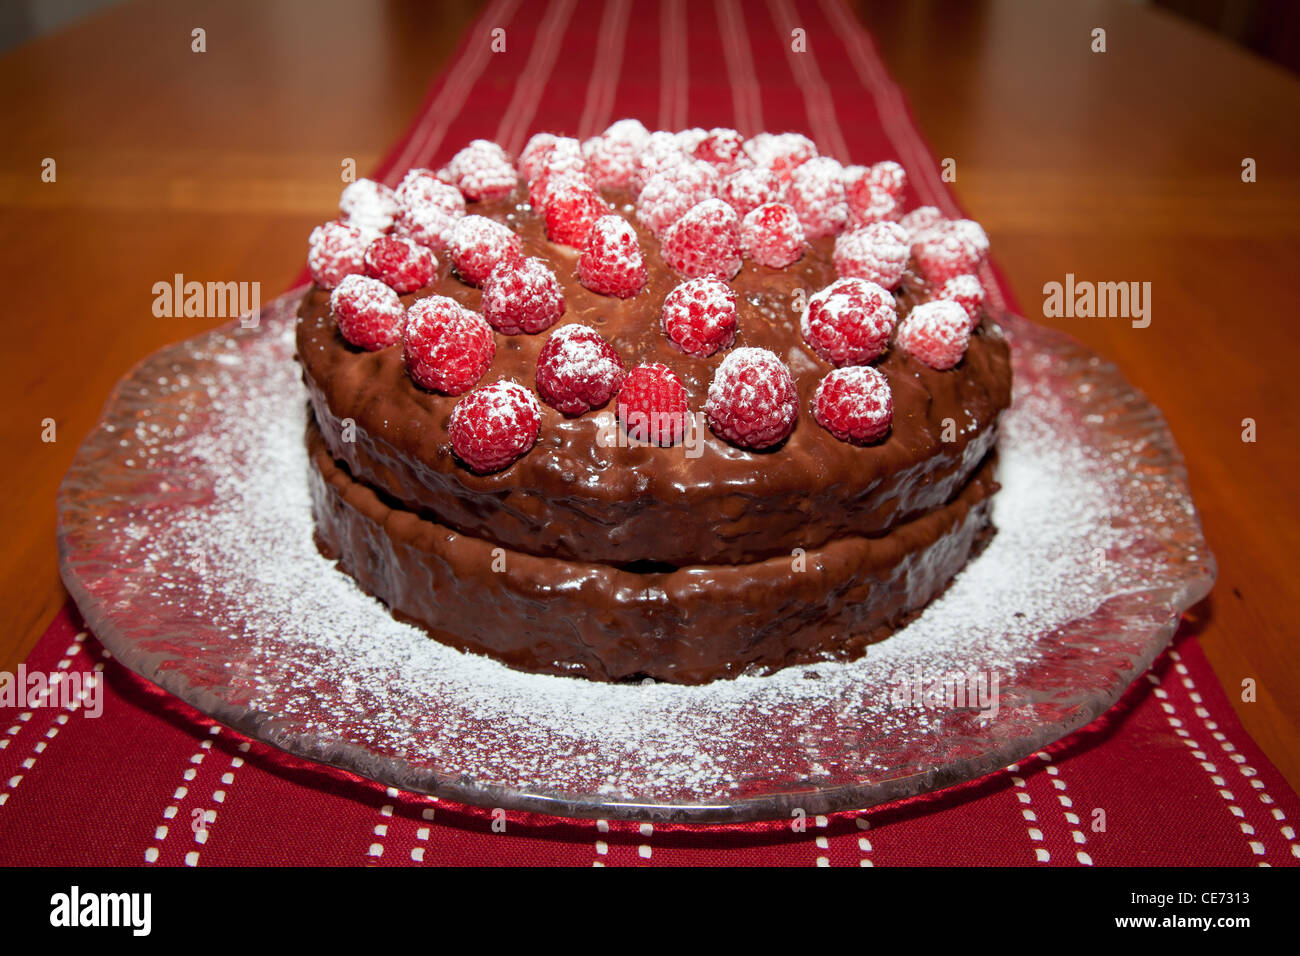 Whole Delicious Birthday Cake With Chocolate Ganache And Raspberries Dusting Of Powdered Sugar